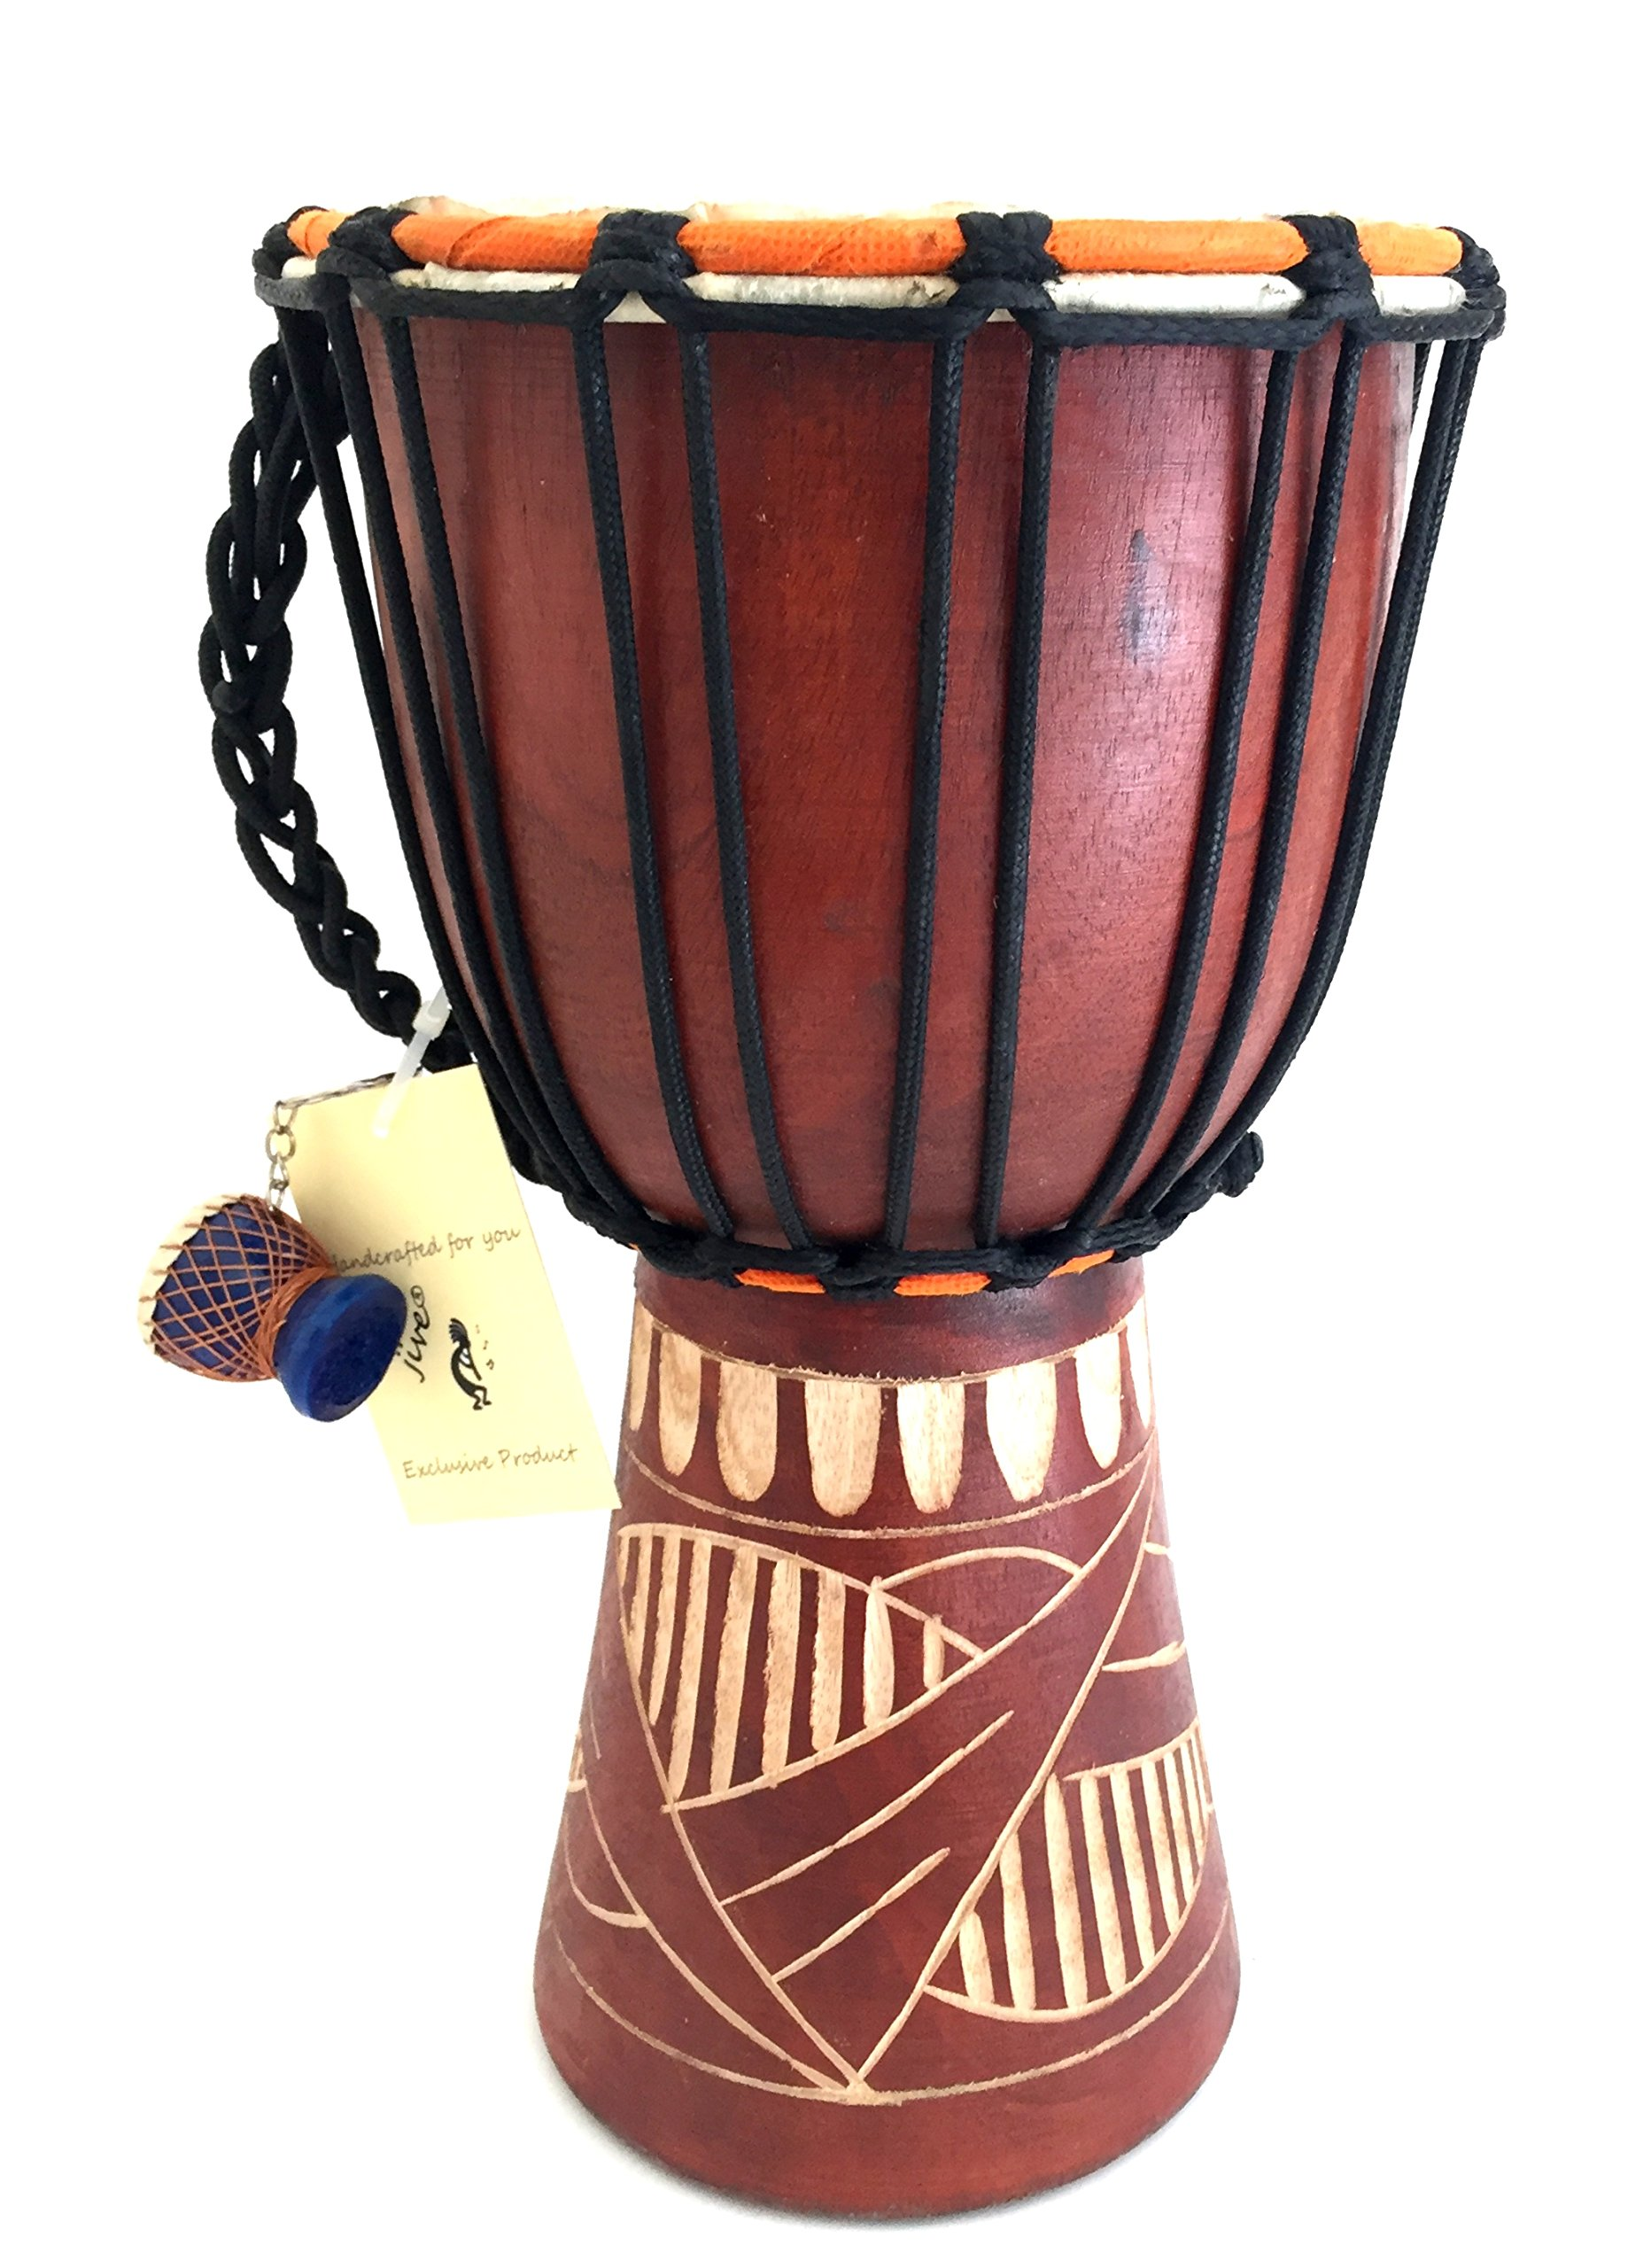 Djembe Drum Bongo Congo African Solid Wood Drum - MED SIZE- 12'', JIVE FEDERAL (TM) BRAND, Professional Premium Quality / Includes Drum Key Chain